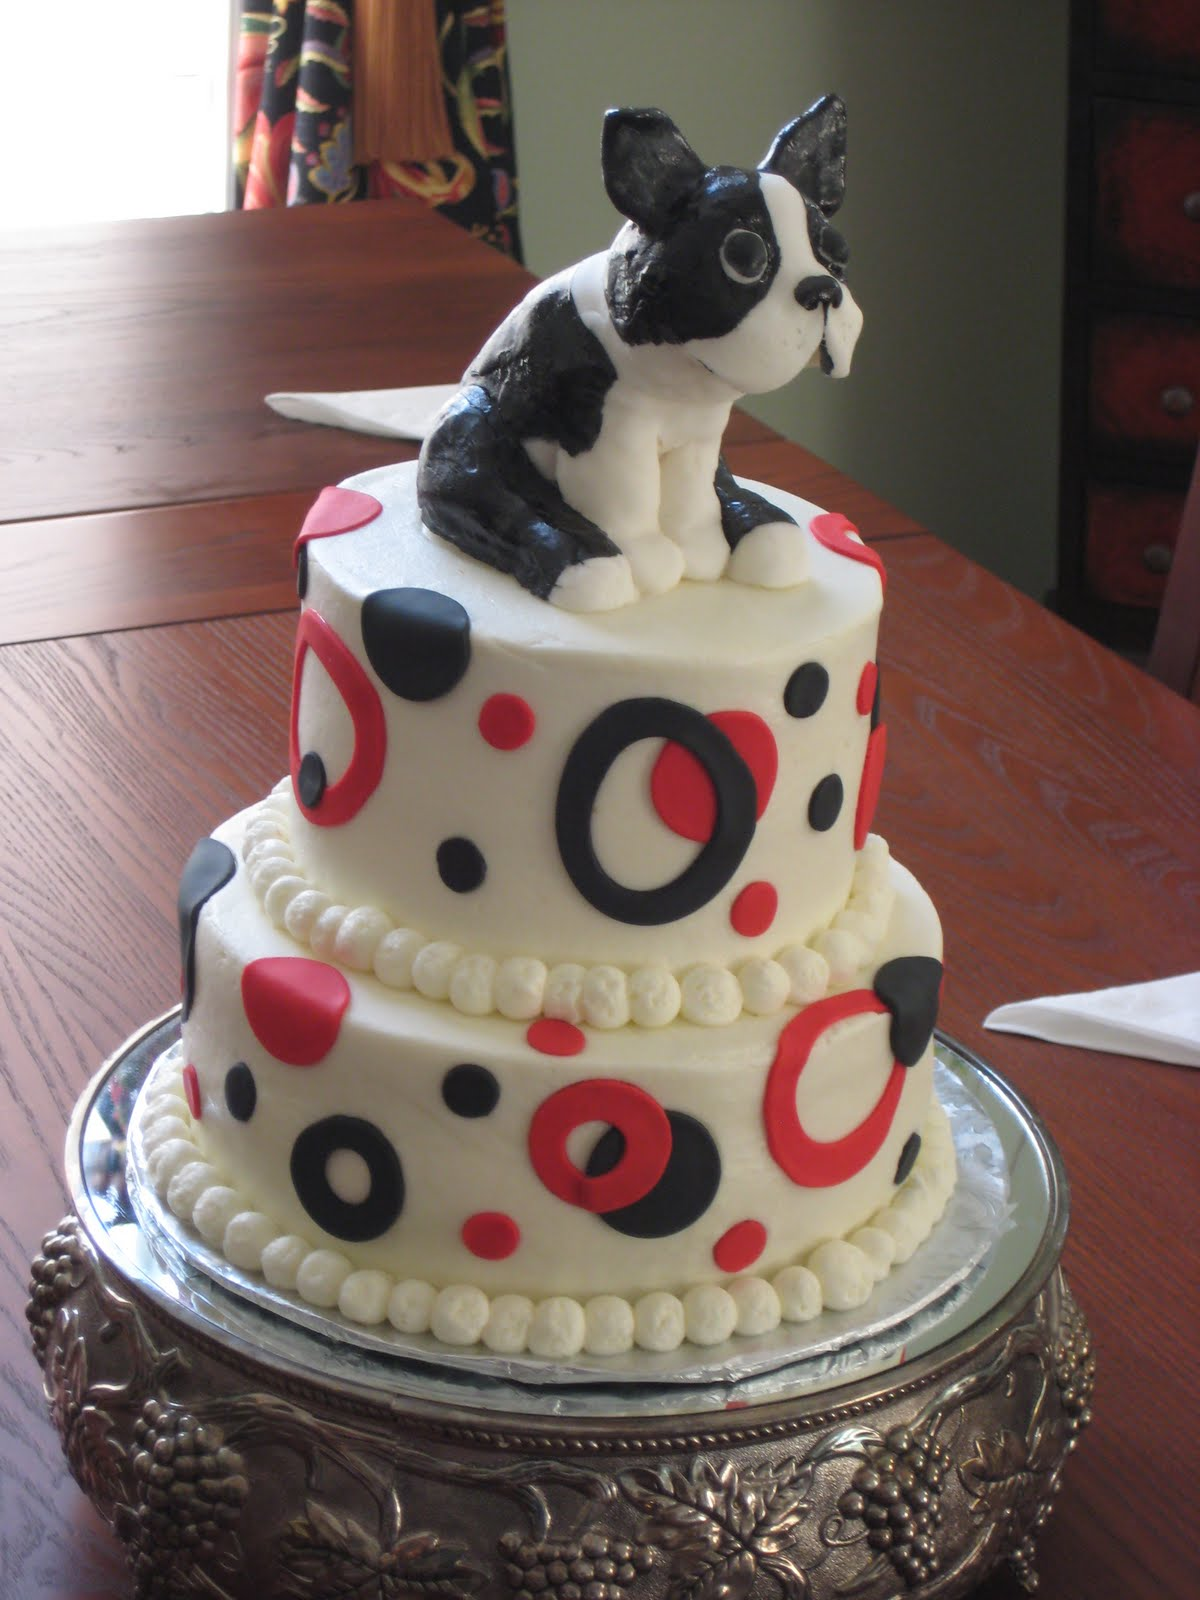 For the love of cake brothers boston terrier birthday cake - Happy birthday cake picture ...